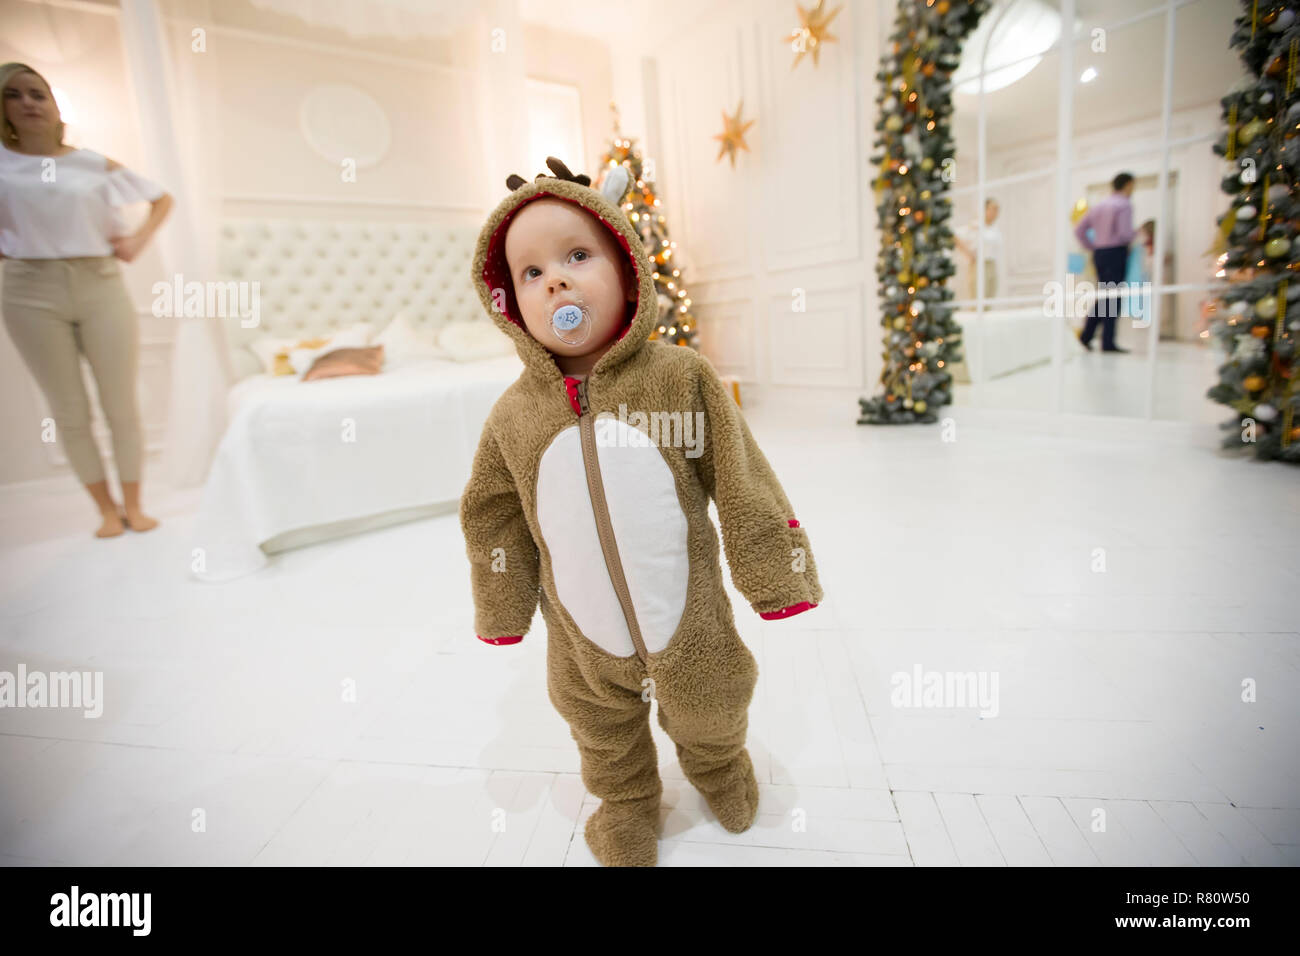 Kid in a carnival costume in the New Year's interior - Stock Image